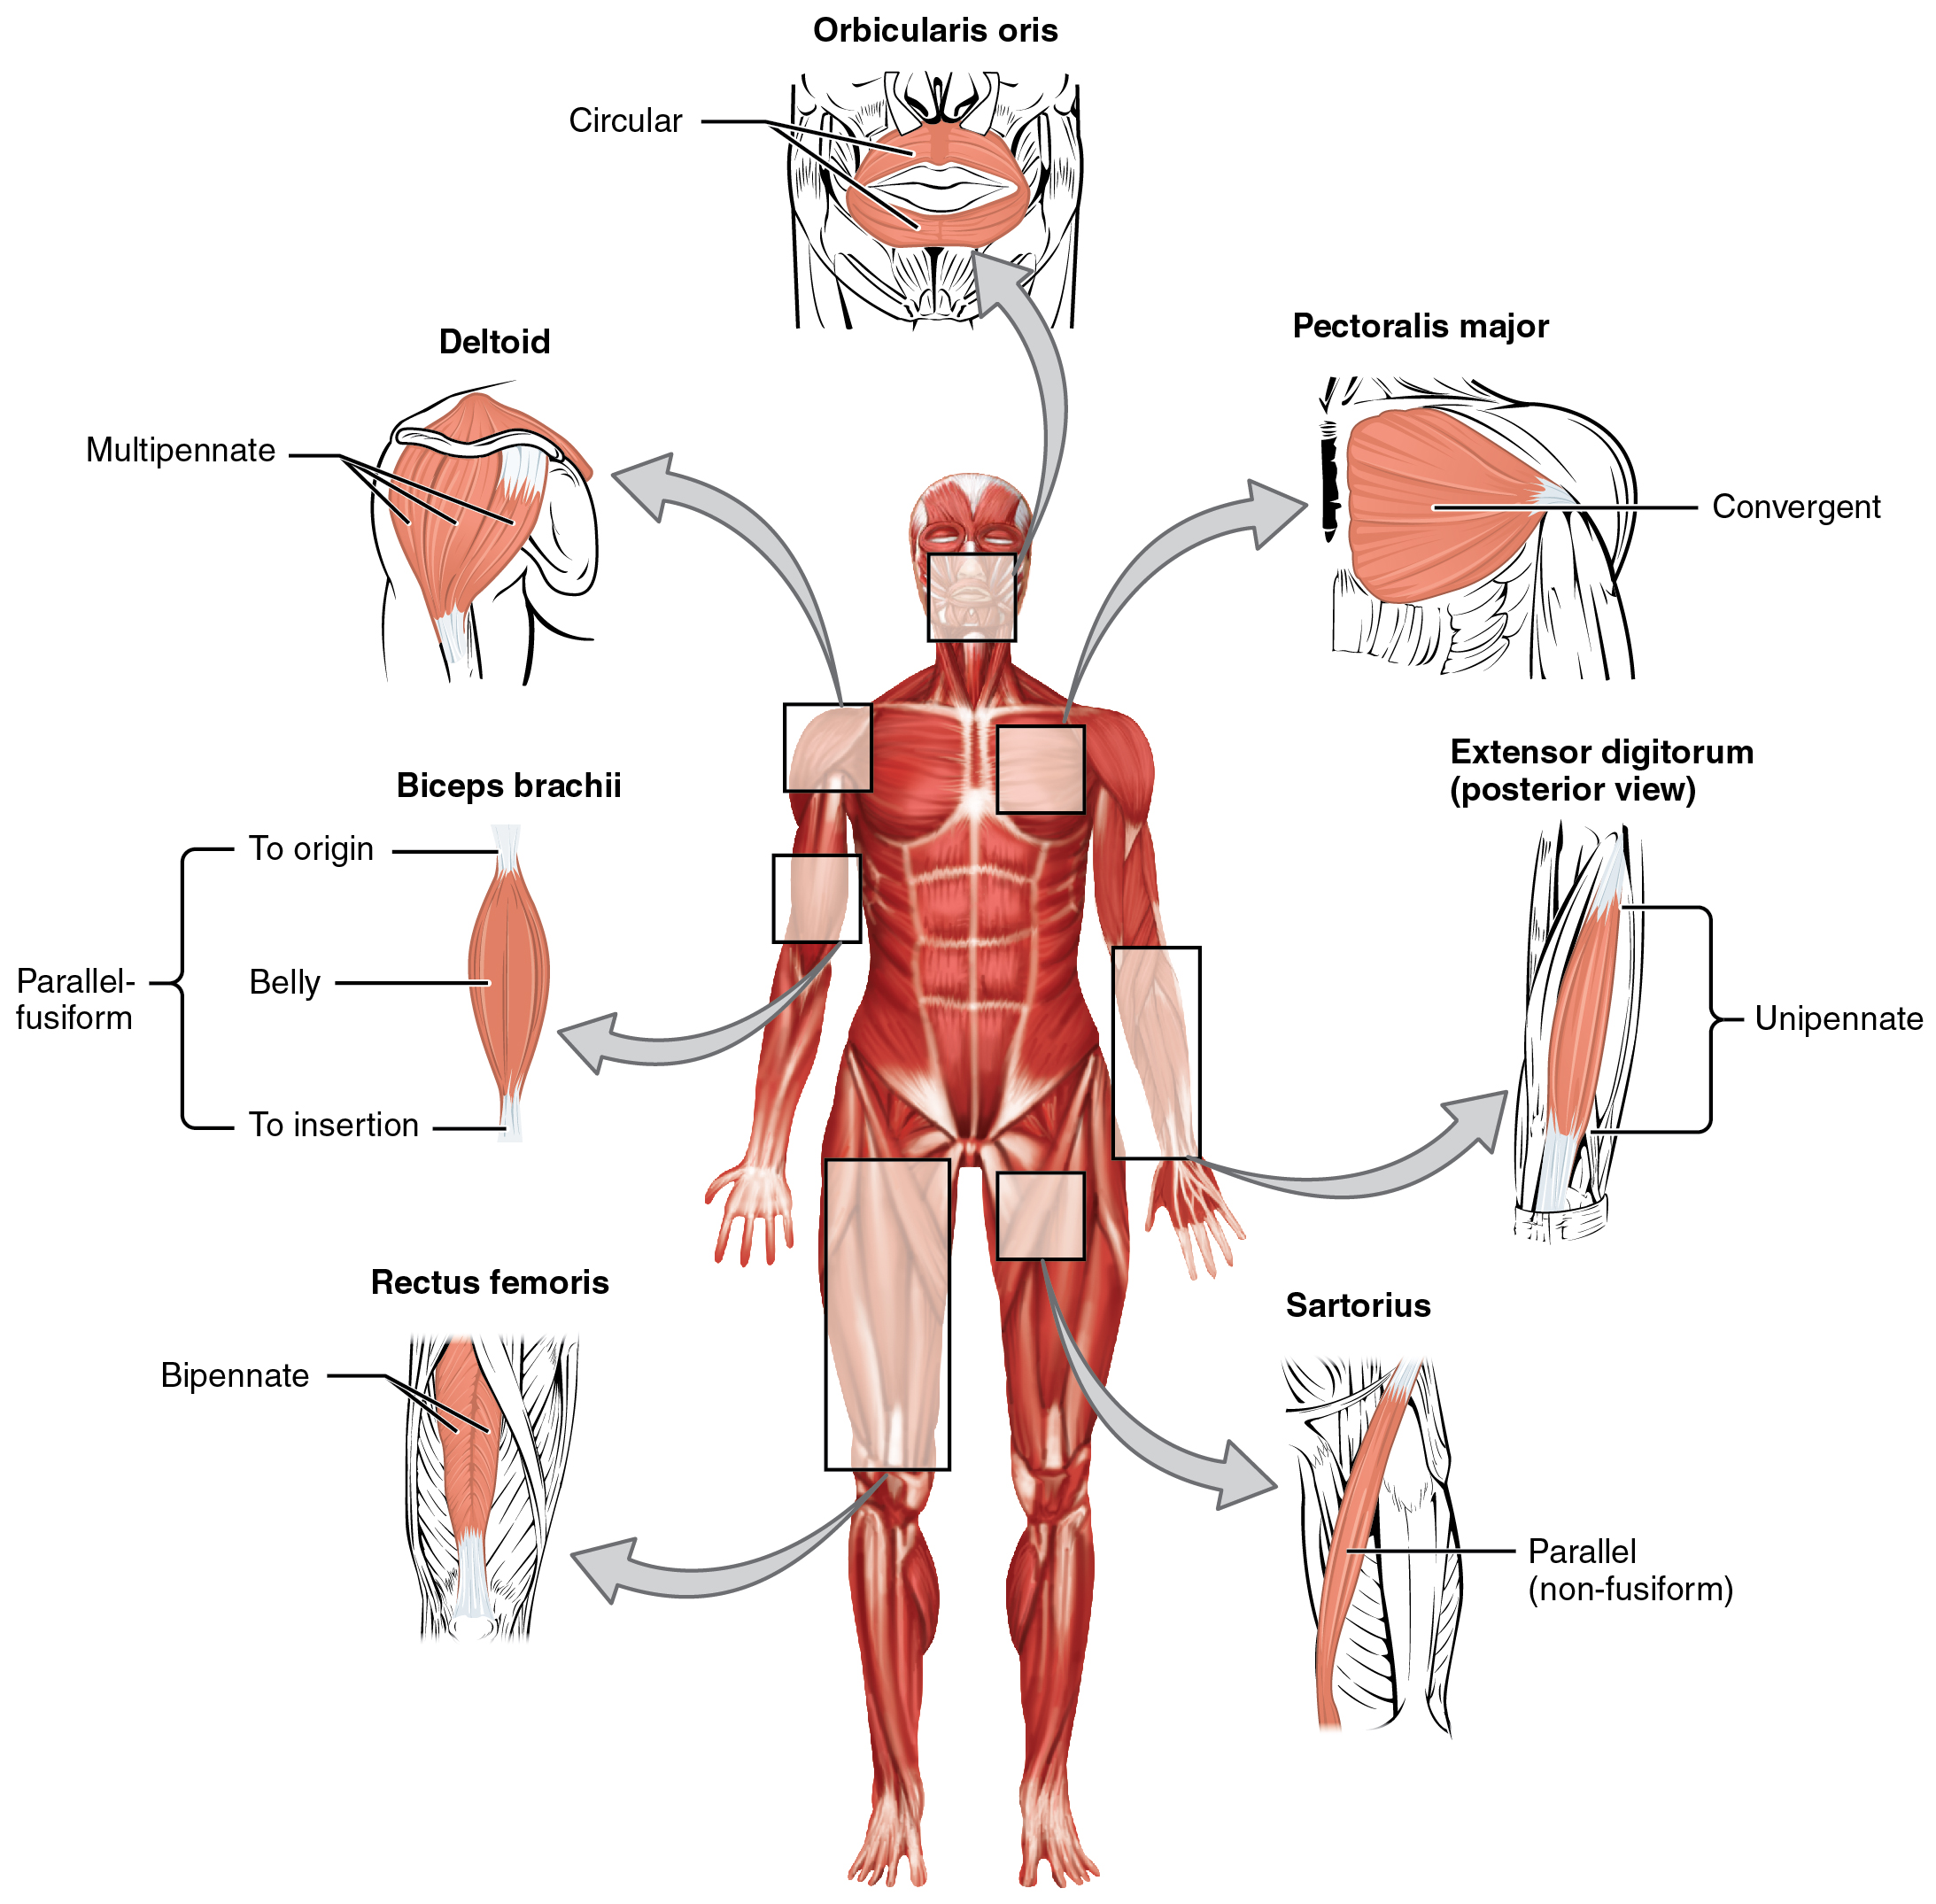 11.1 interactions of skeletal muscles, their fascicle arrangement, Muscles